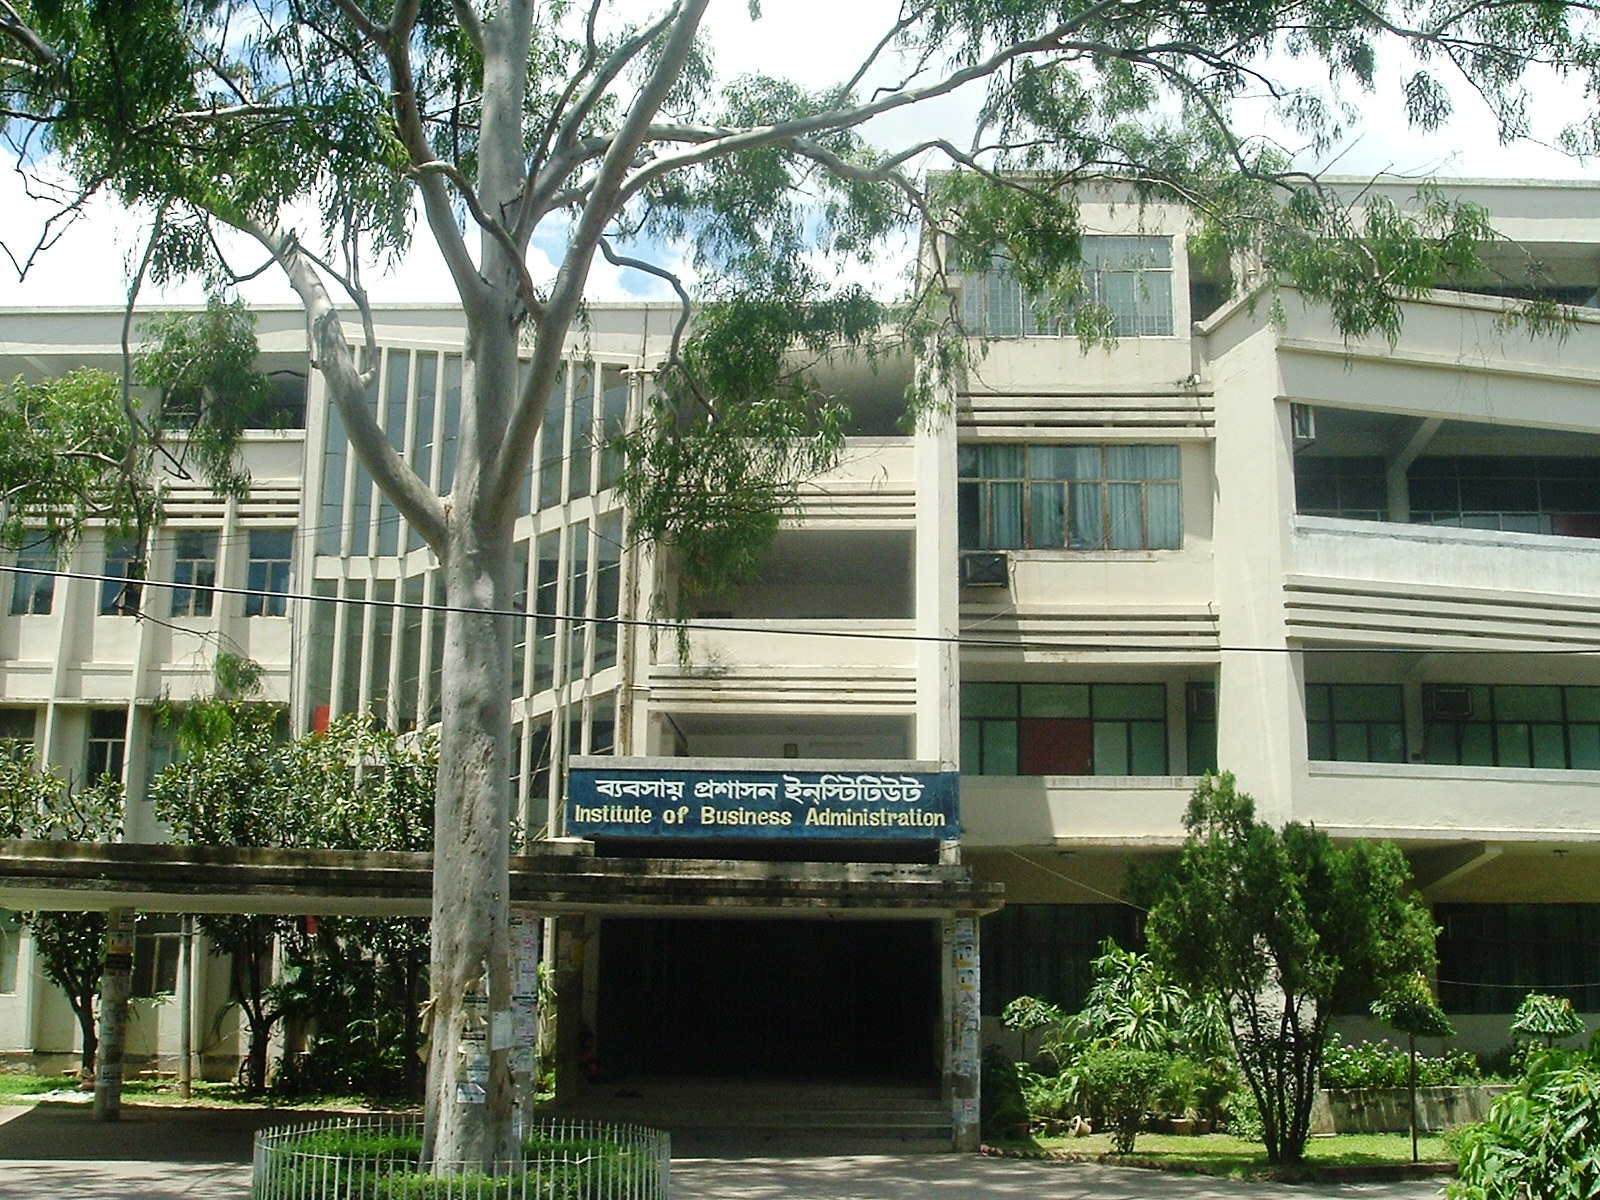 Institute of Business Administration, University of Dhaka